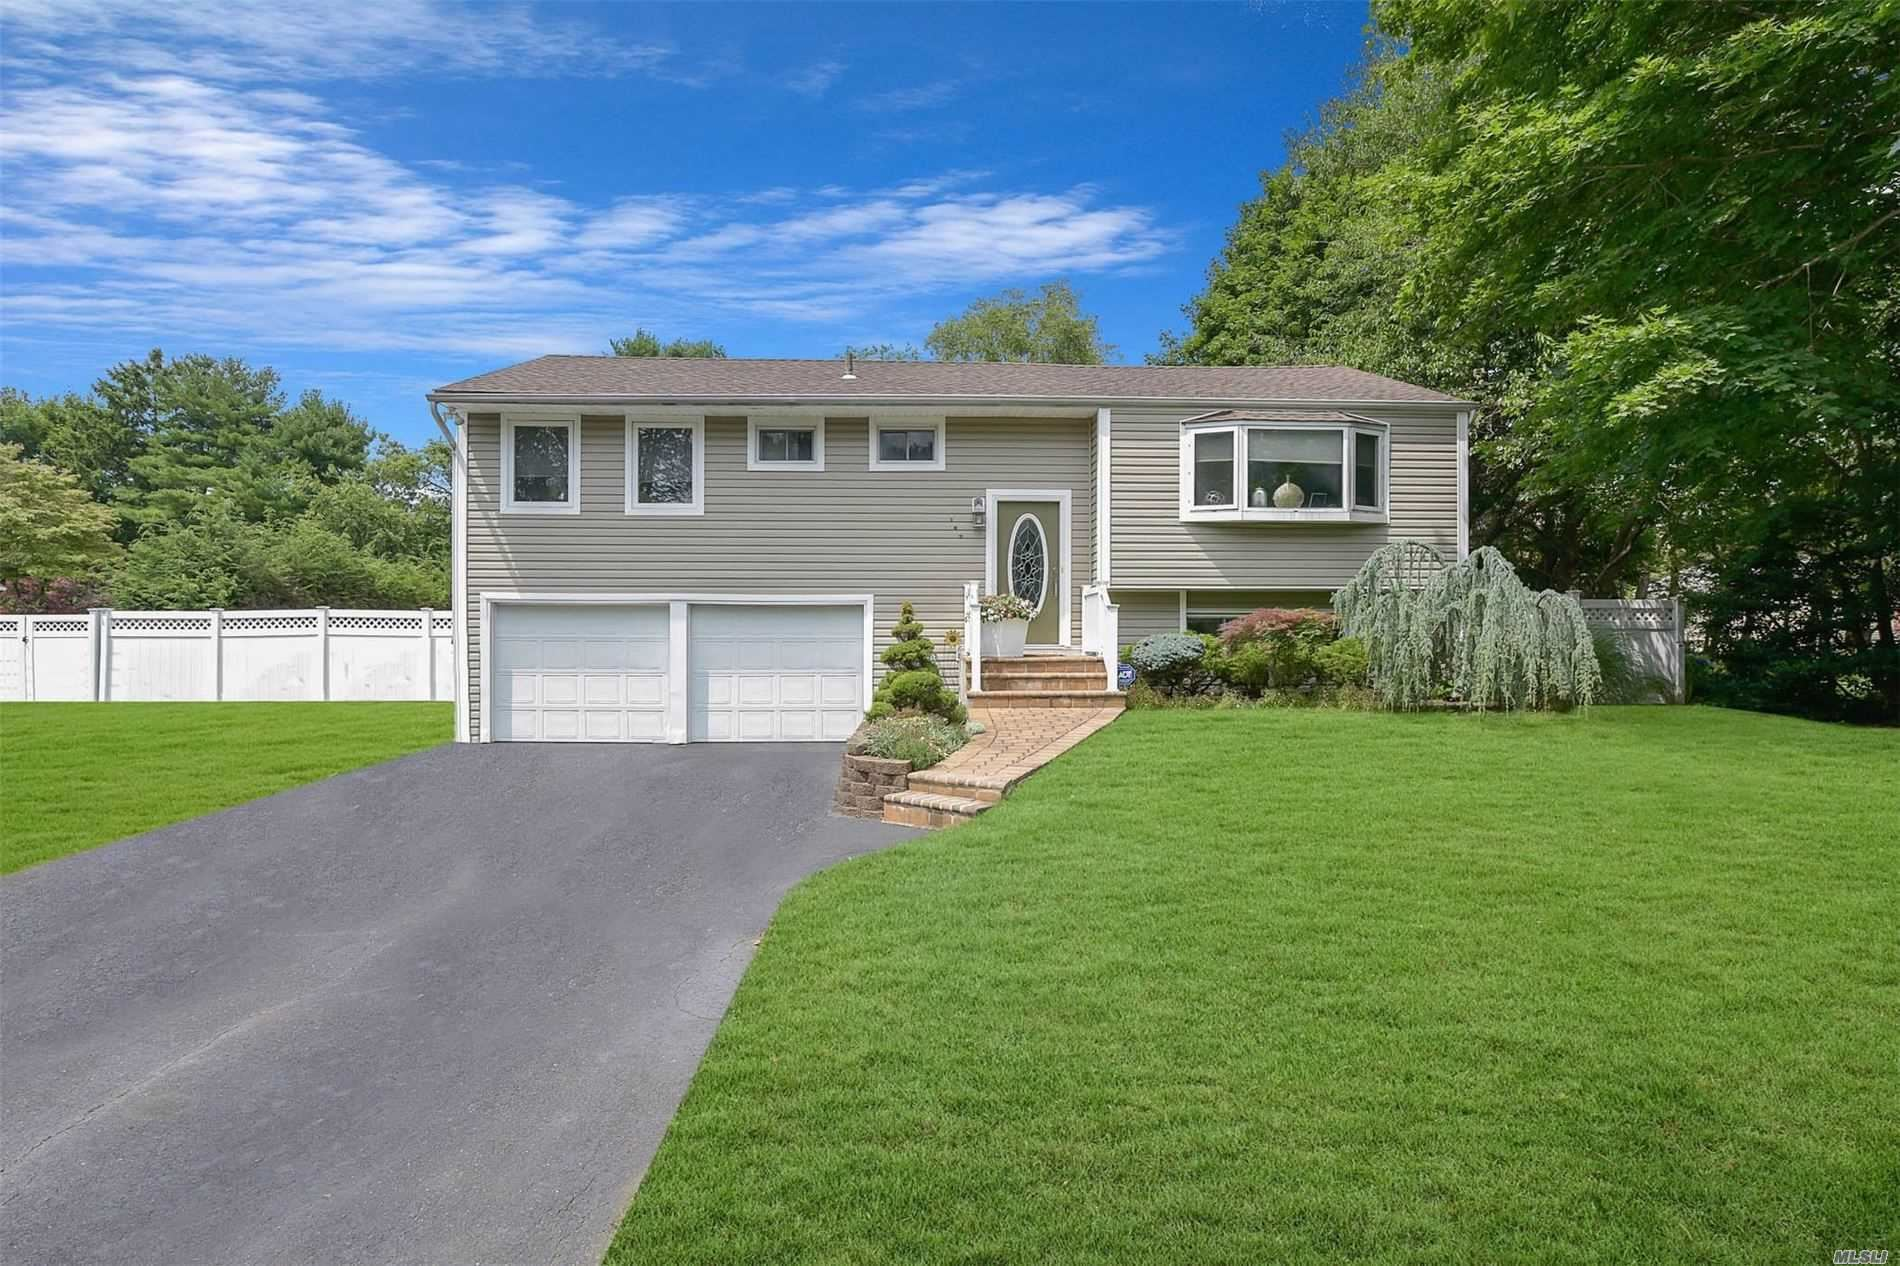 145 Burr Rd, East Northport, NY 11731 - MLS#: 3233112